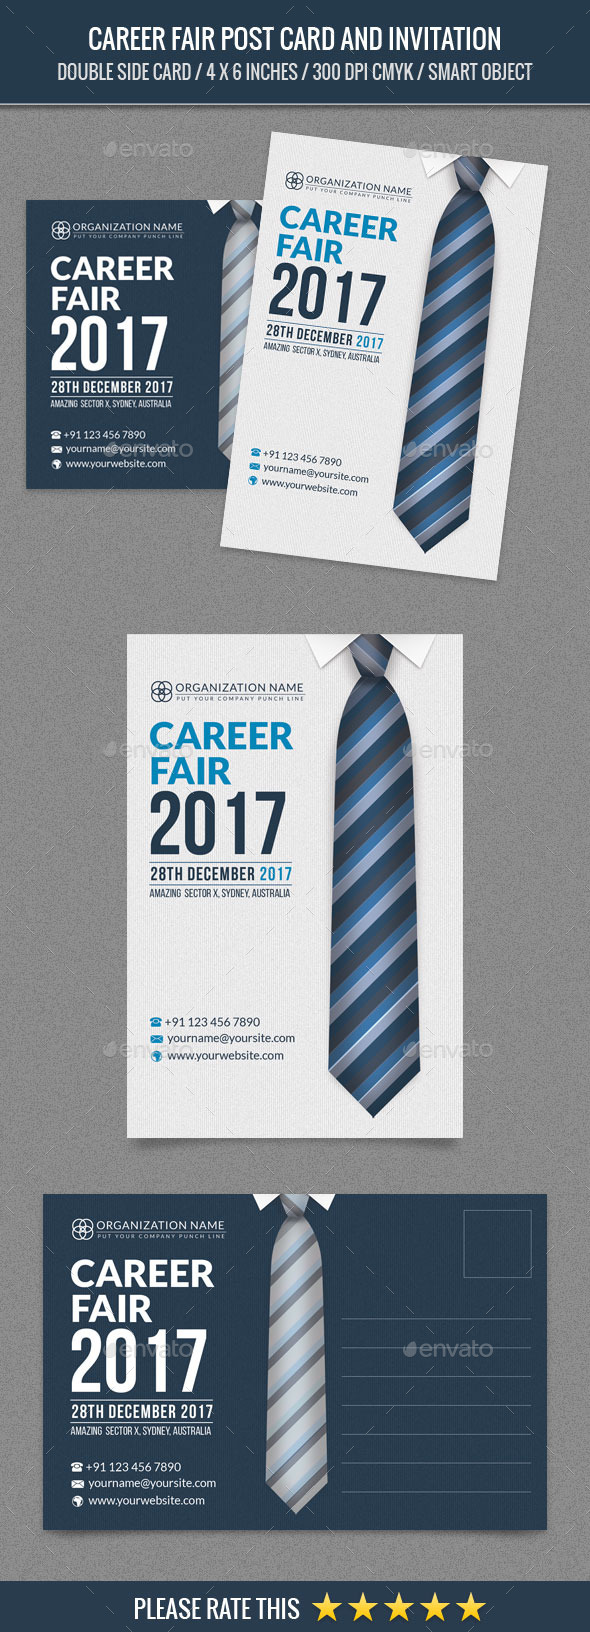 Career Fair Post Card Template - Cards & Invites Print Templates